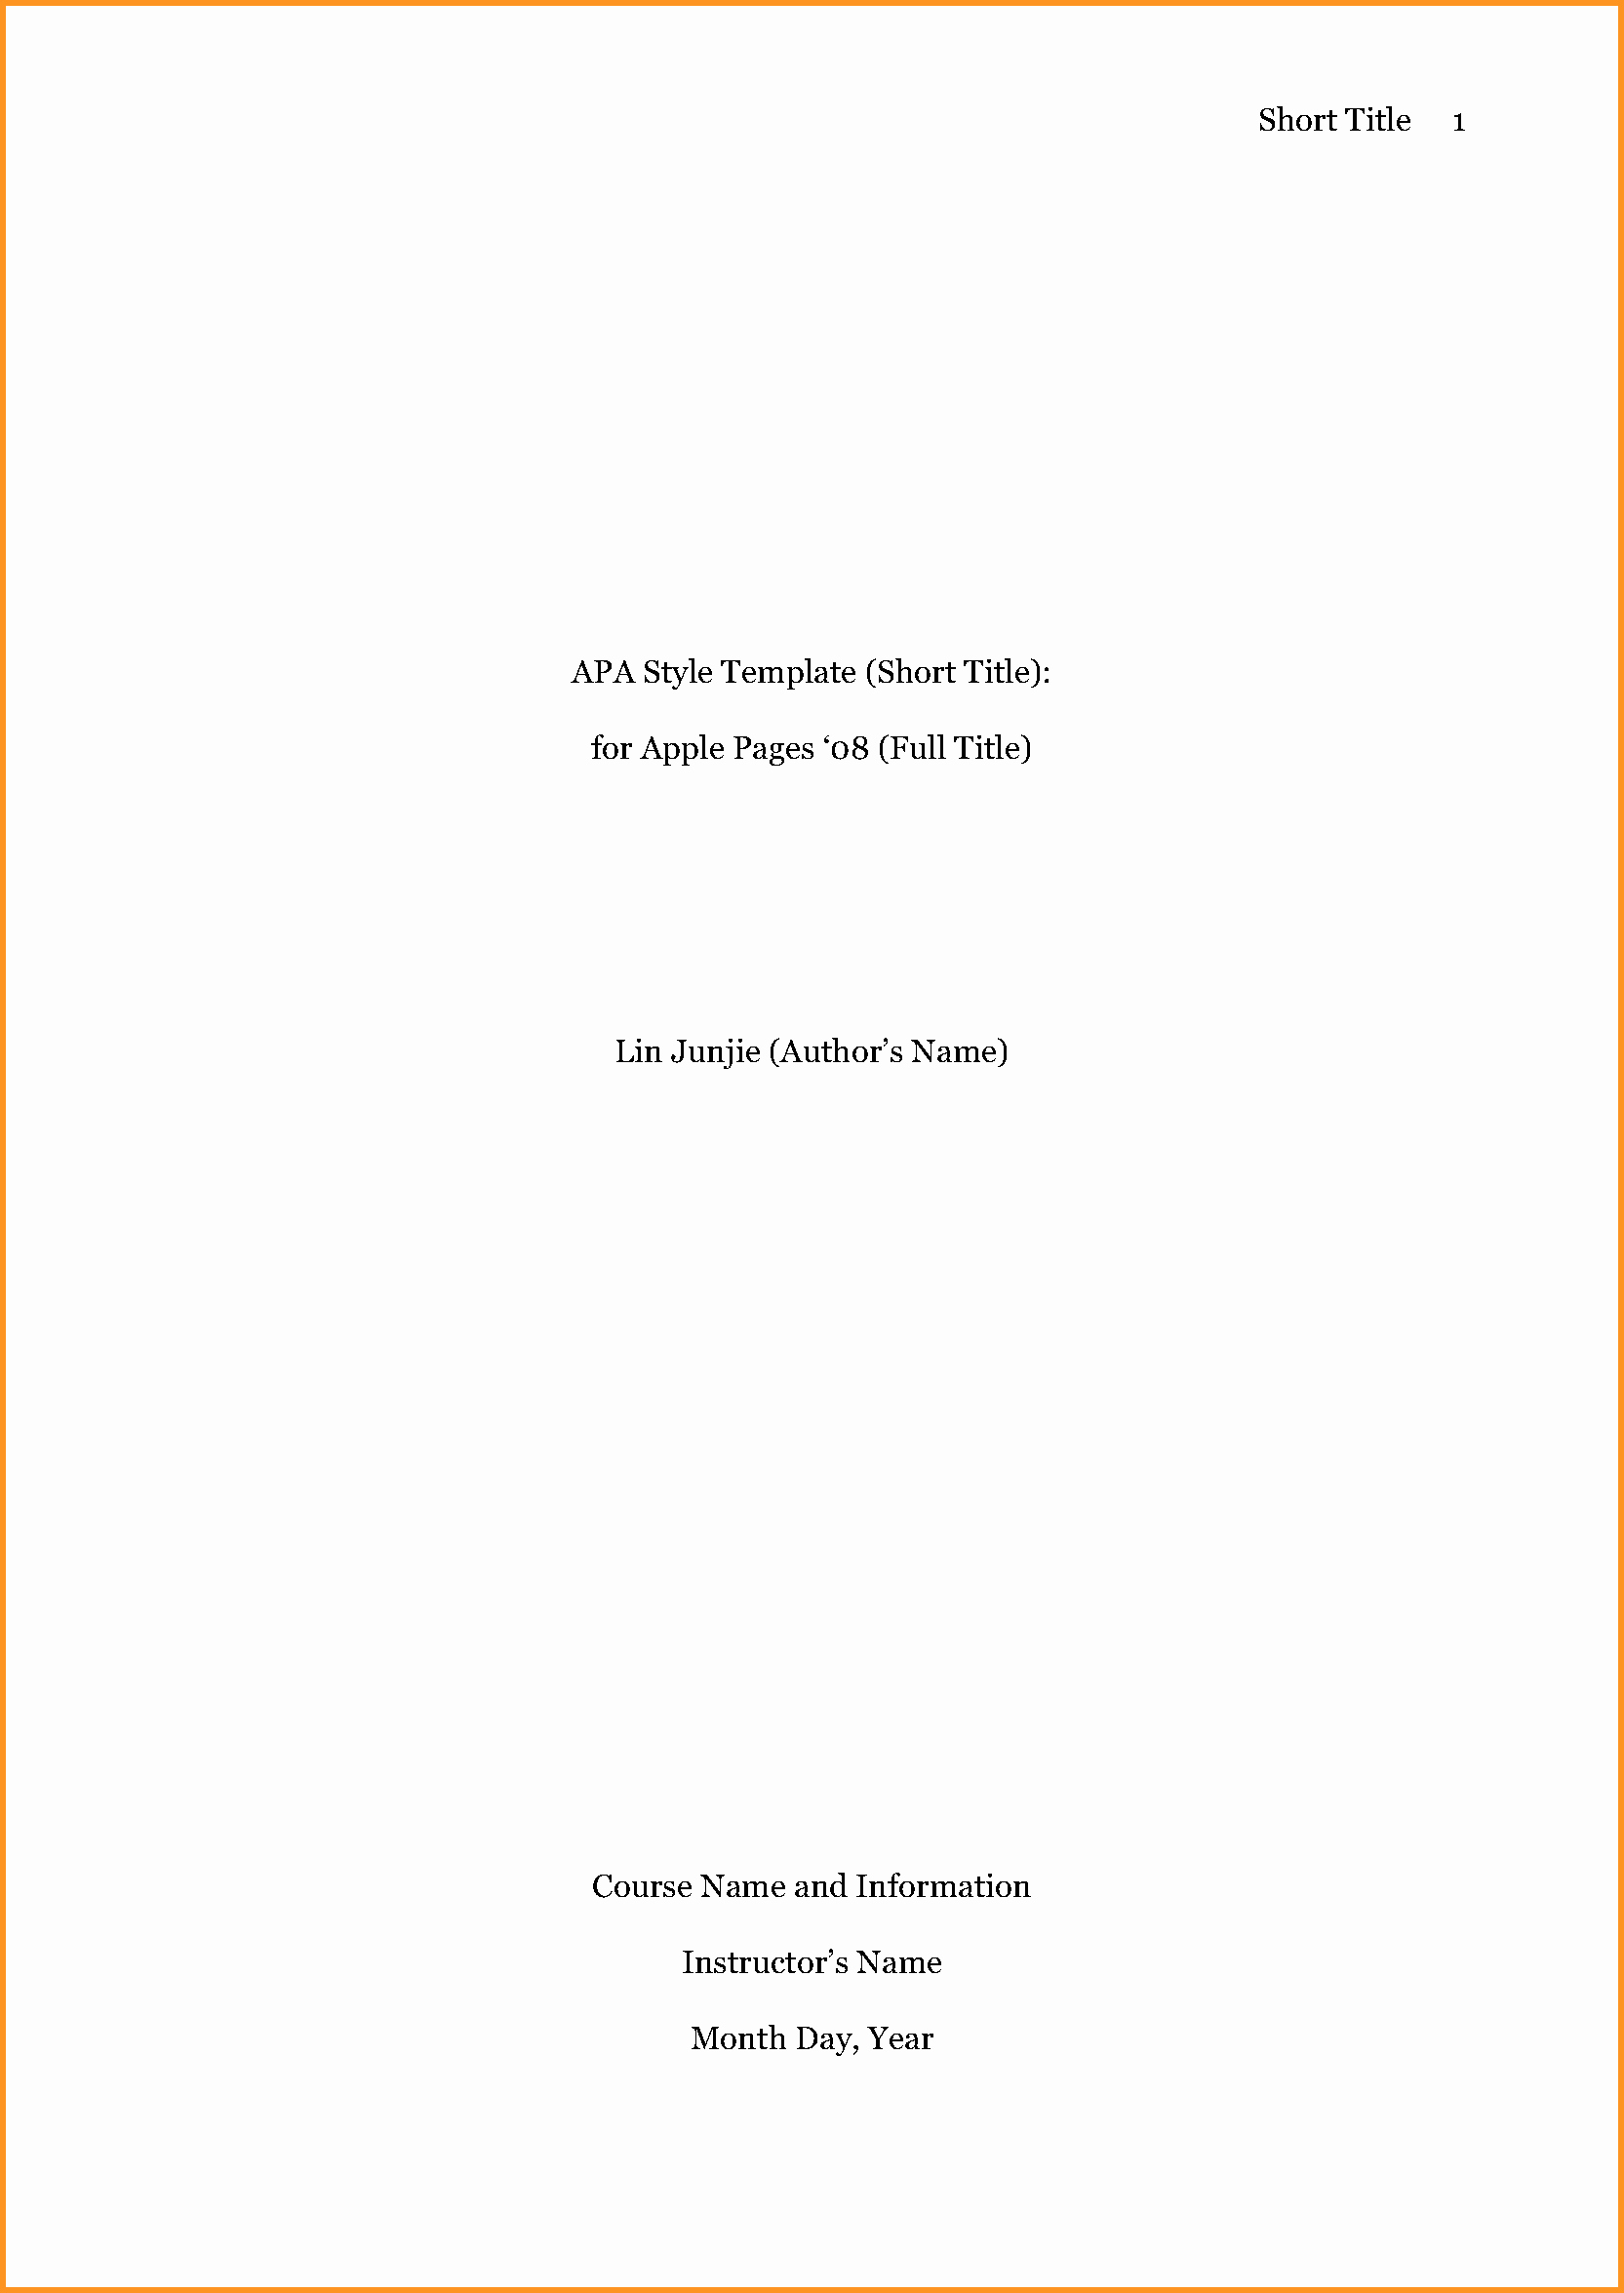 010 Research Paper Apamat Cover Page Fresh Sample Titles Bamboodownunder Of Template Rare For Apa Format Title Full